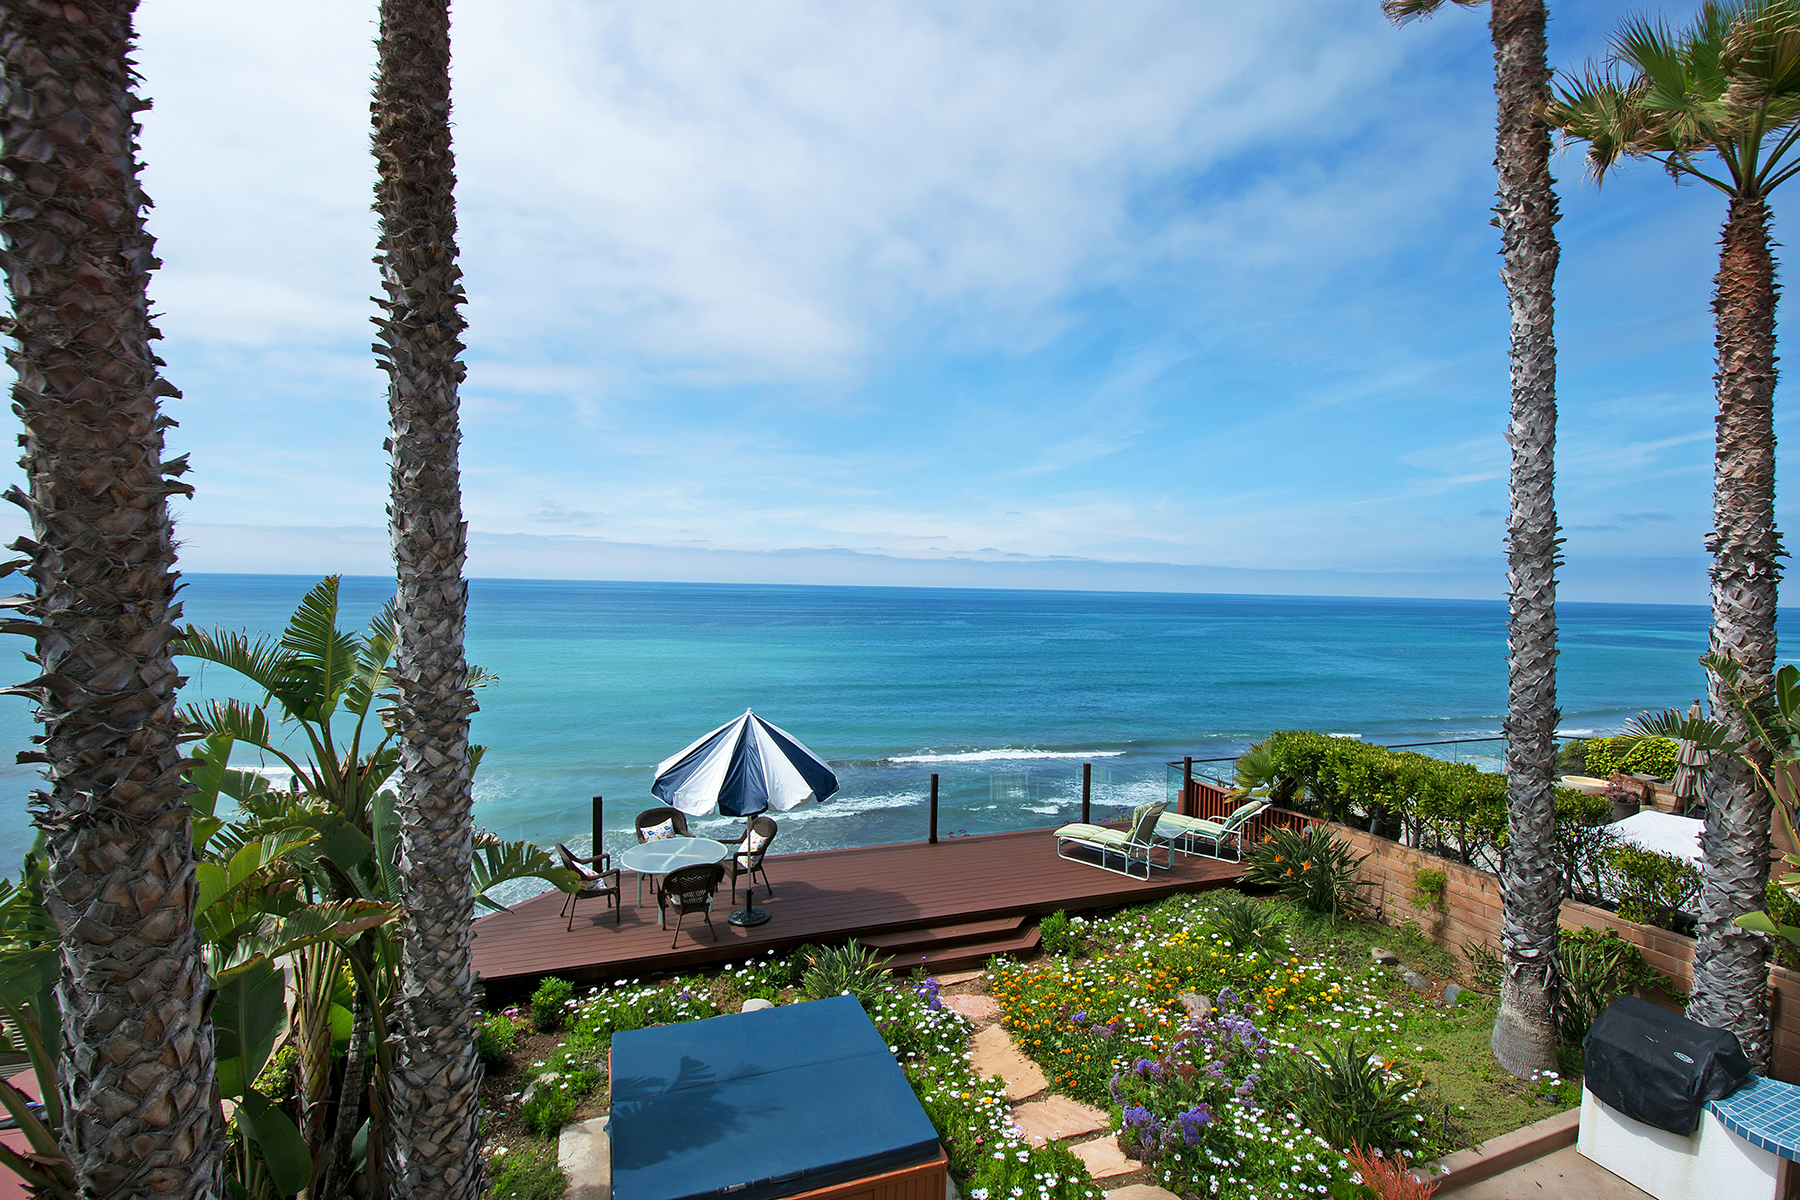 Single Family Home for Sale at 304 Neptune Avenue Encinitas, California, 92024 United States